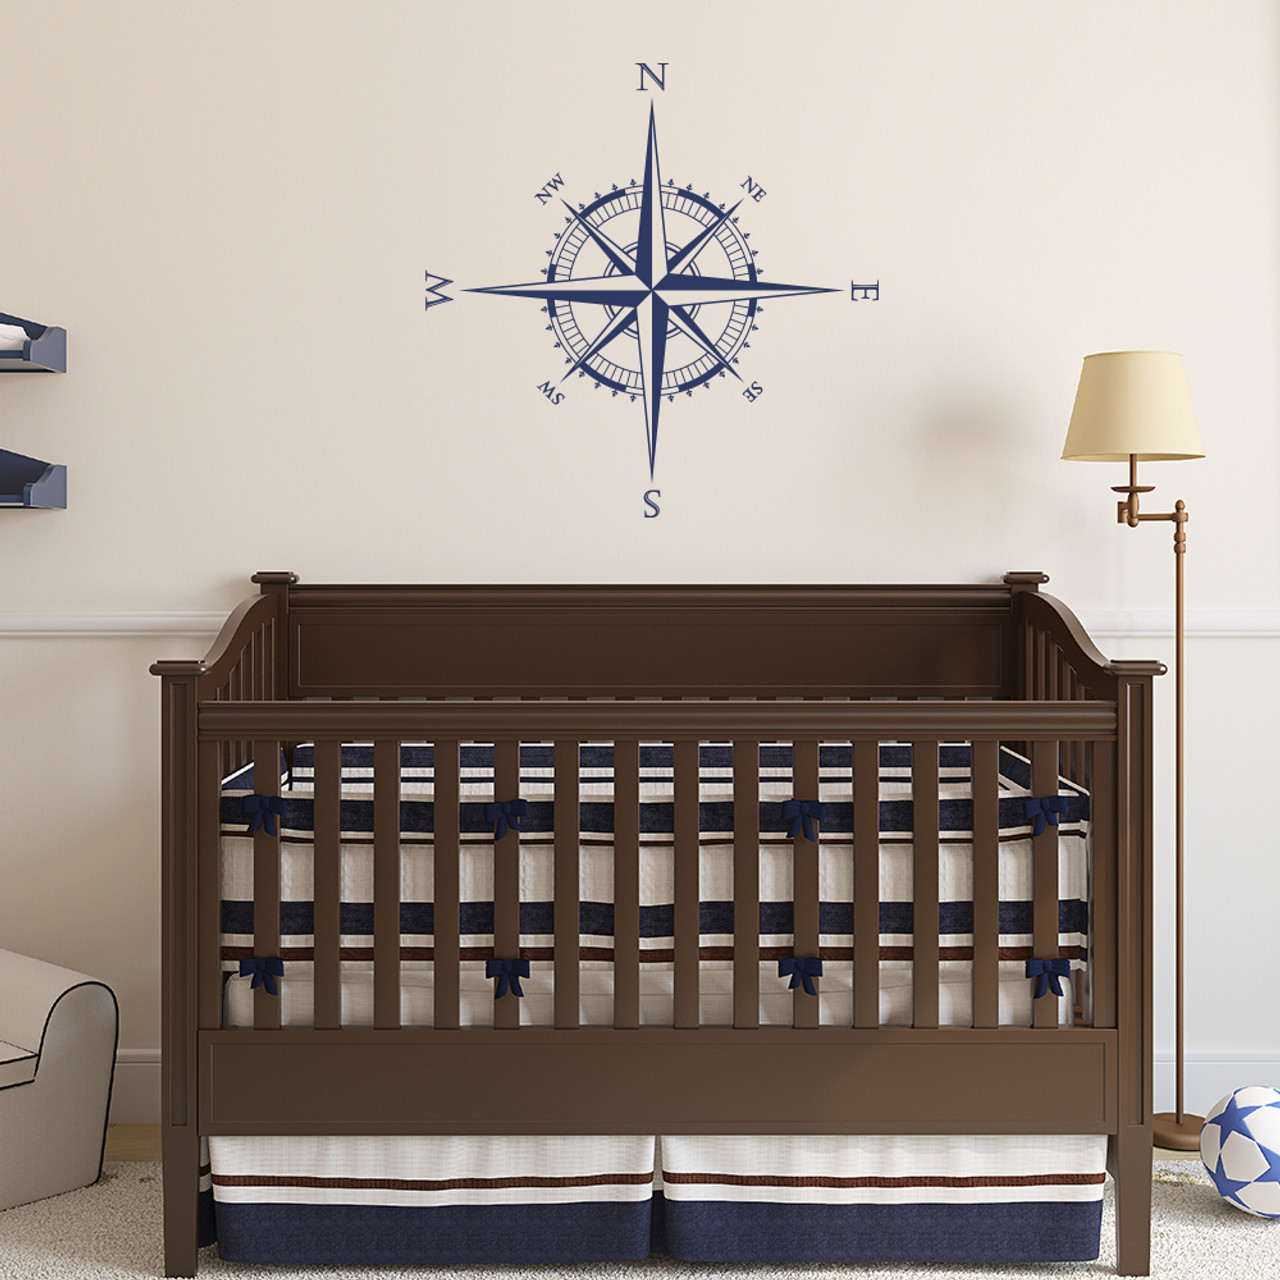 The Explorer Compass wall or ceiling decal shown here in dark blue vinyl.